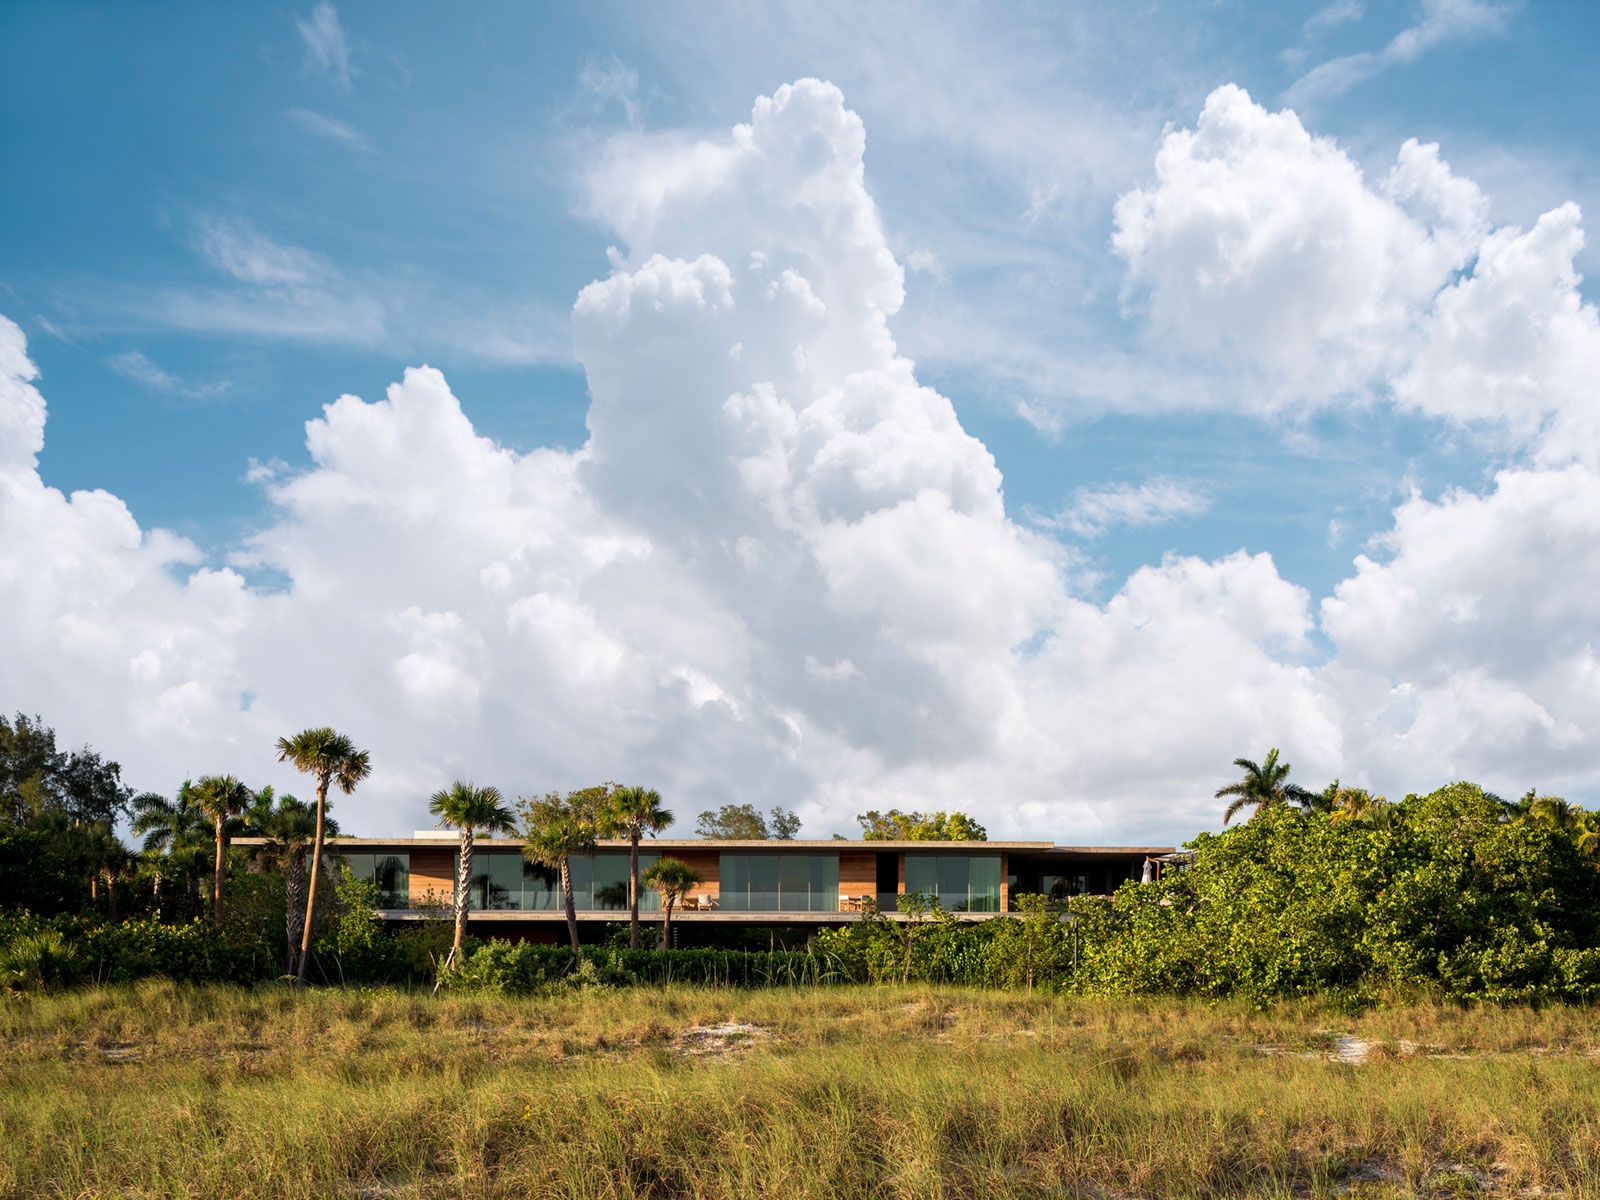 Rear exterior of Casa Larga